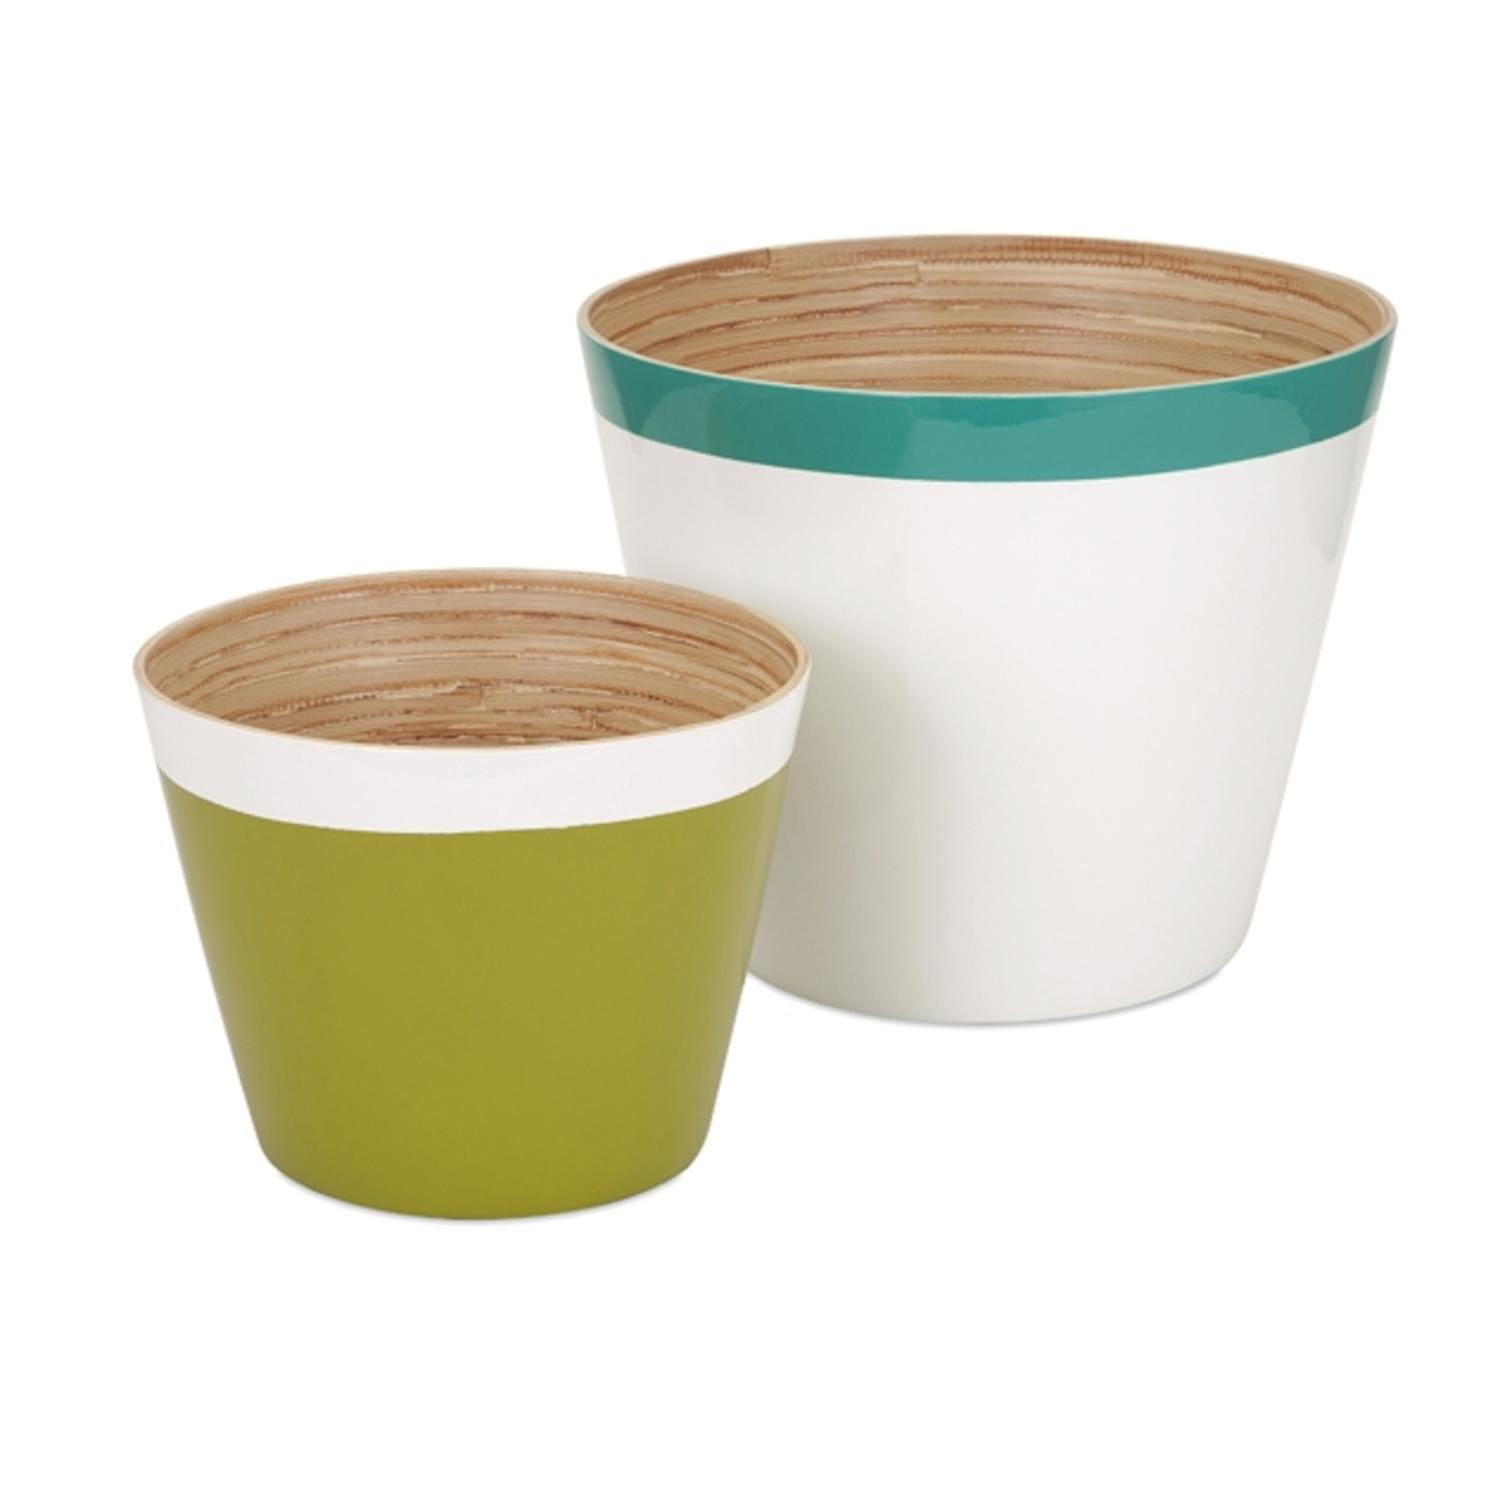 "Set of 2 Color Block Teal Blue Green and White Bamboo Cachepot Flower Planters 12"" by CC Home Furnishings"